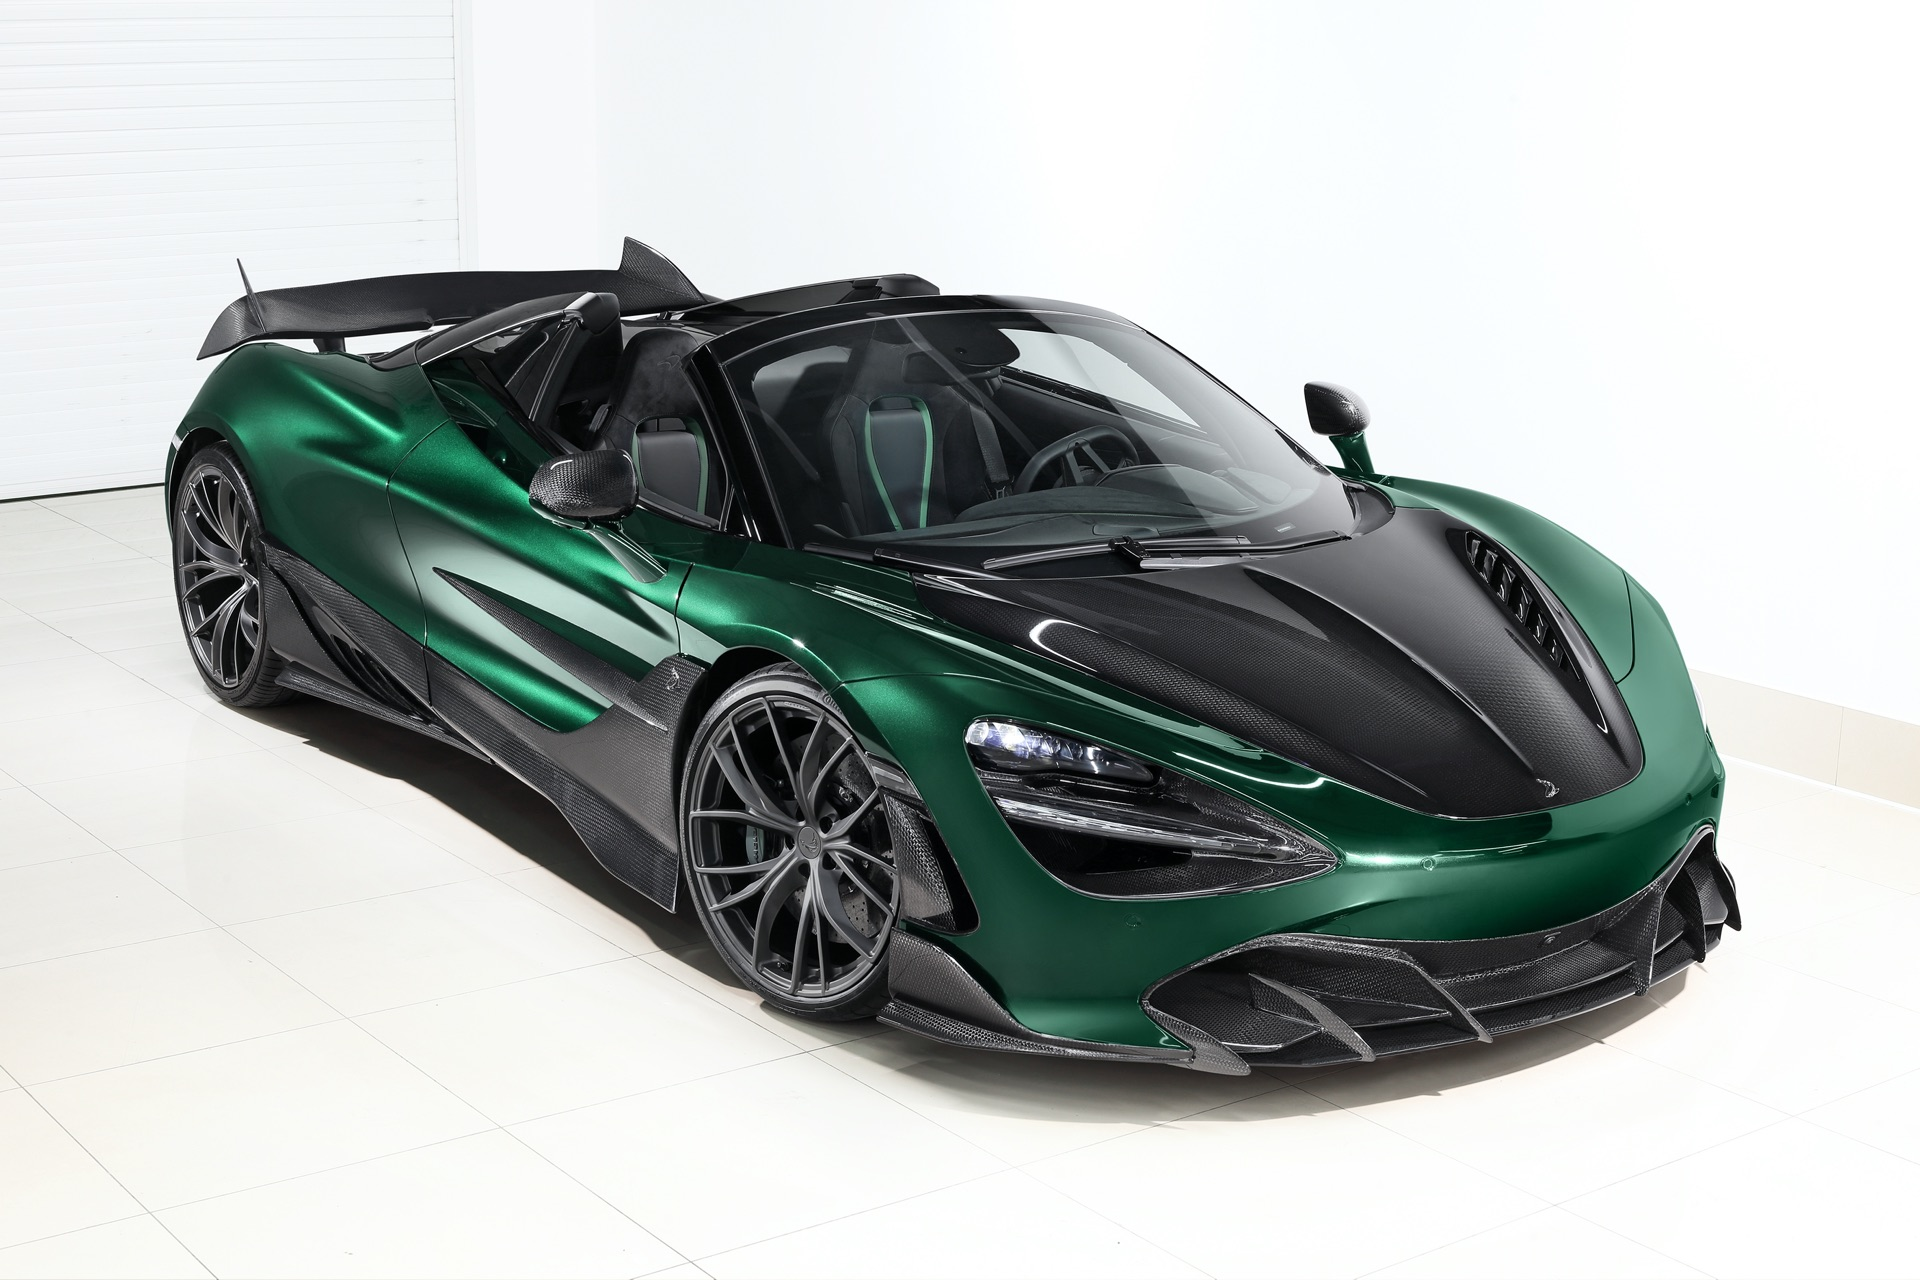 Russian auto tune-up shop TopCar has tailored an aerodynamic suit called Fury for the McLaren 720S Spider, using generous amounts of carbon fiber throughout.